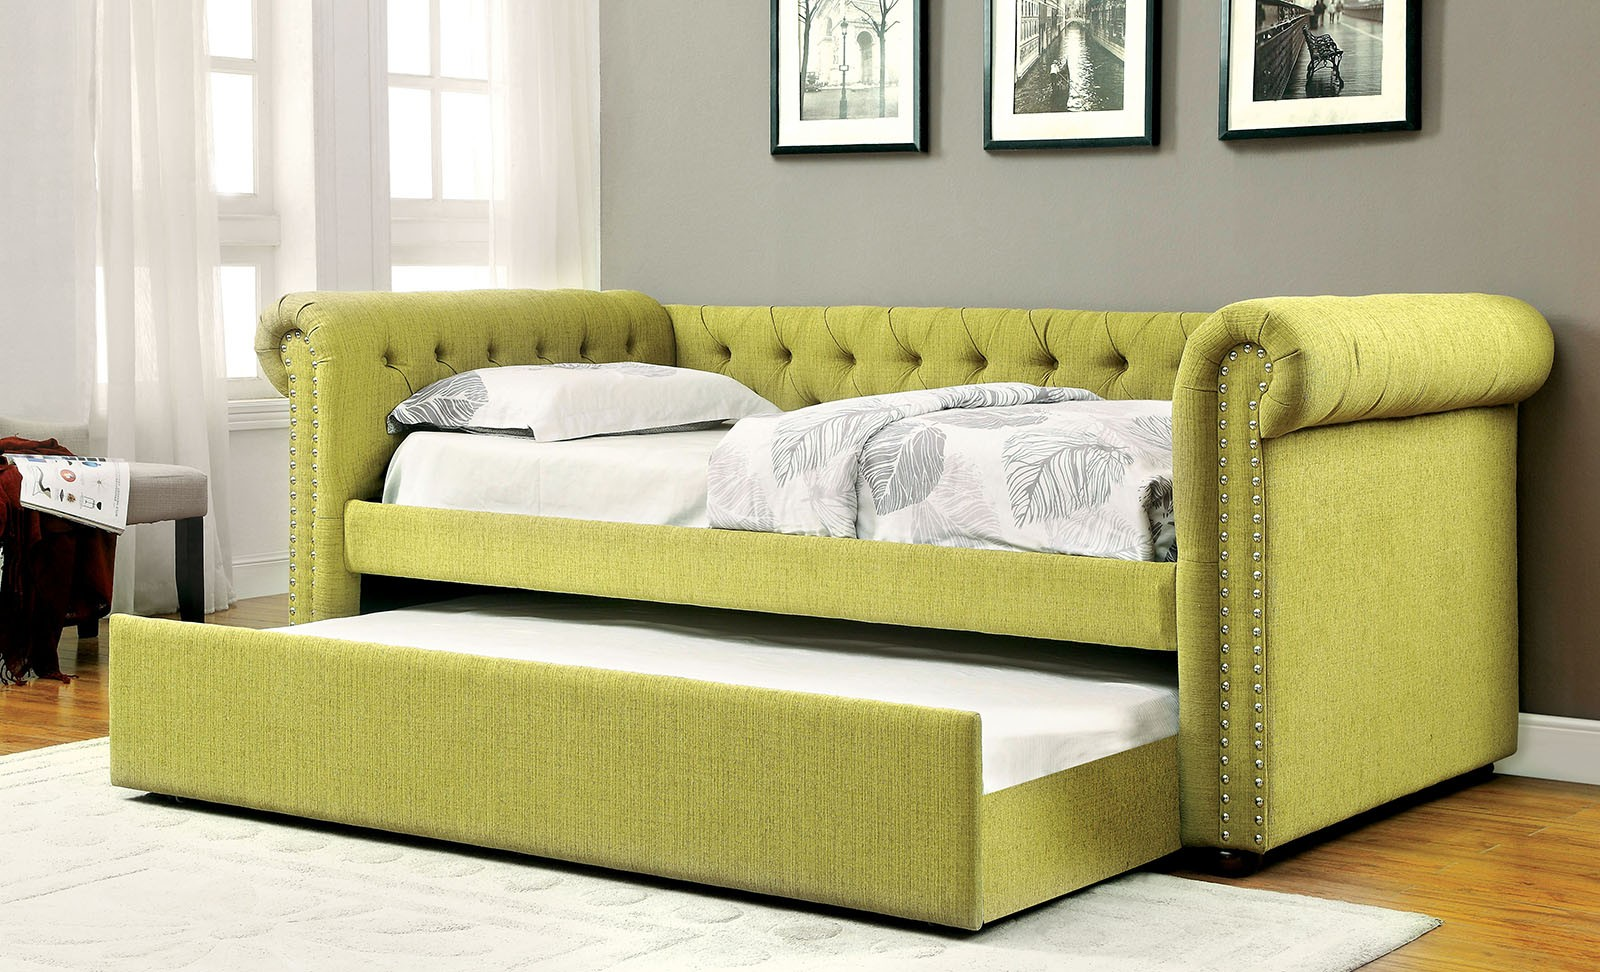 Leanna Transitional Fabric Daybed With Trundle U2013 OC Homestyle Furniture